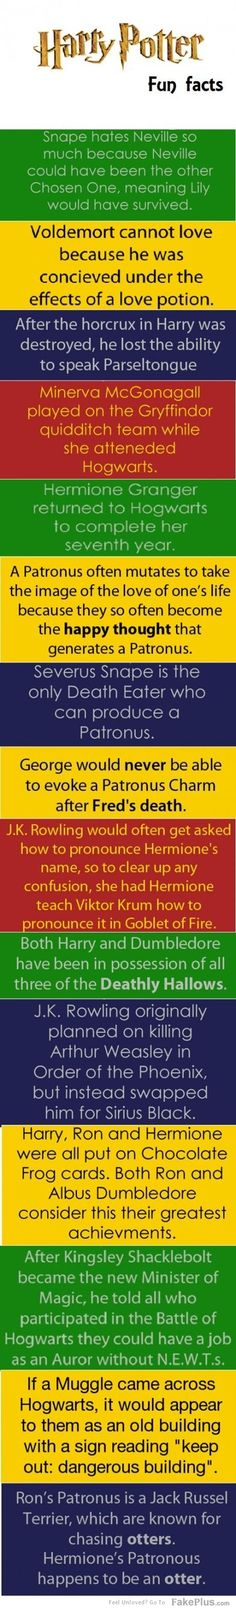 """This was titled """"Harry potter facts you probably didn't know"""".. Is it embarrassing or awesome that I knew them?"""